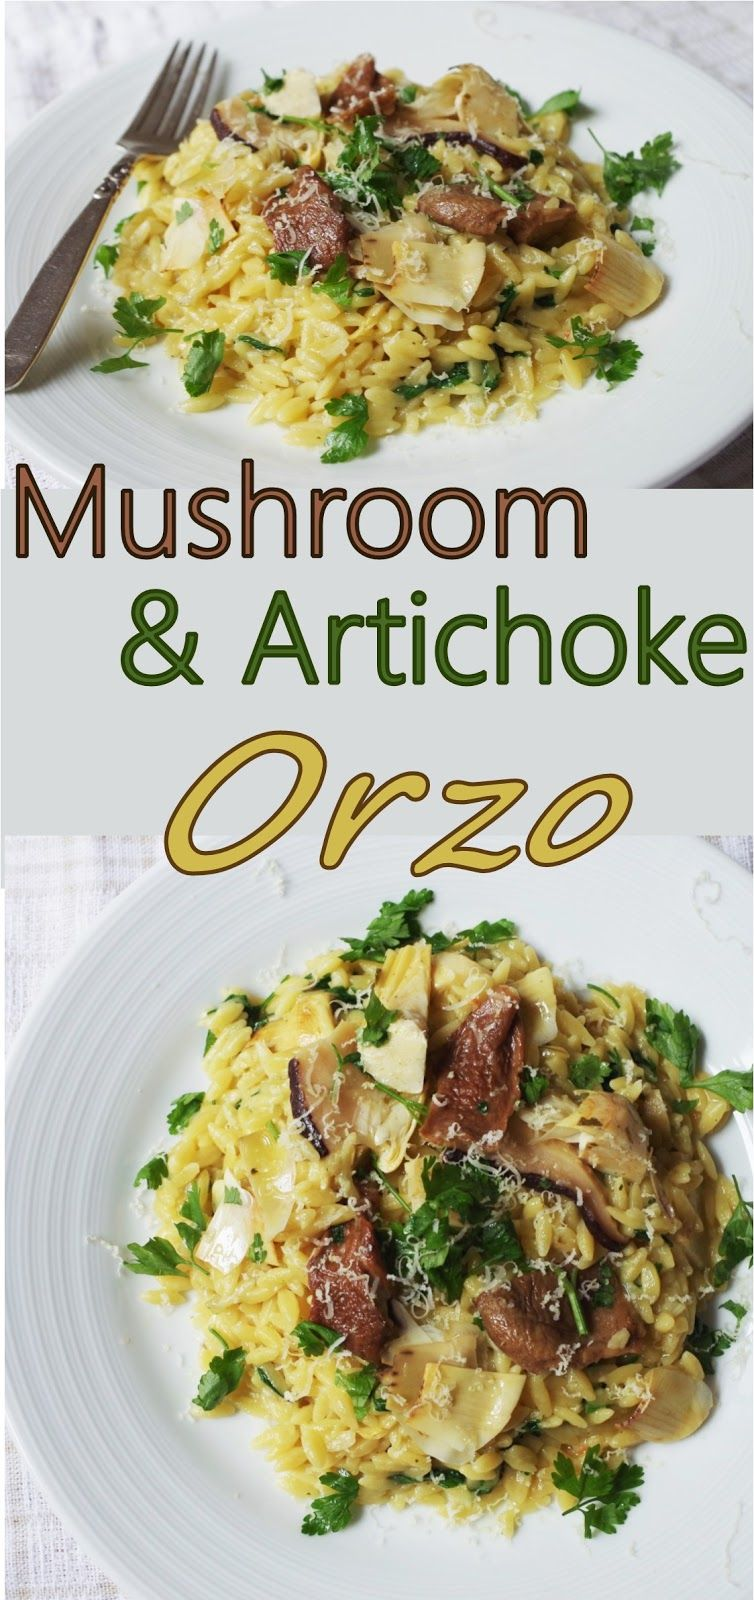 Dried mushroom and artichoke orzo with vegan parmesan and parsley